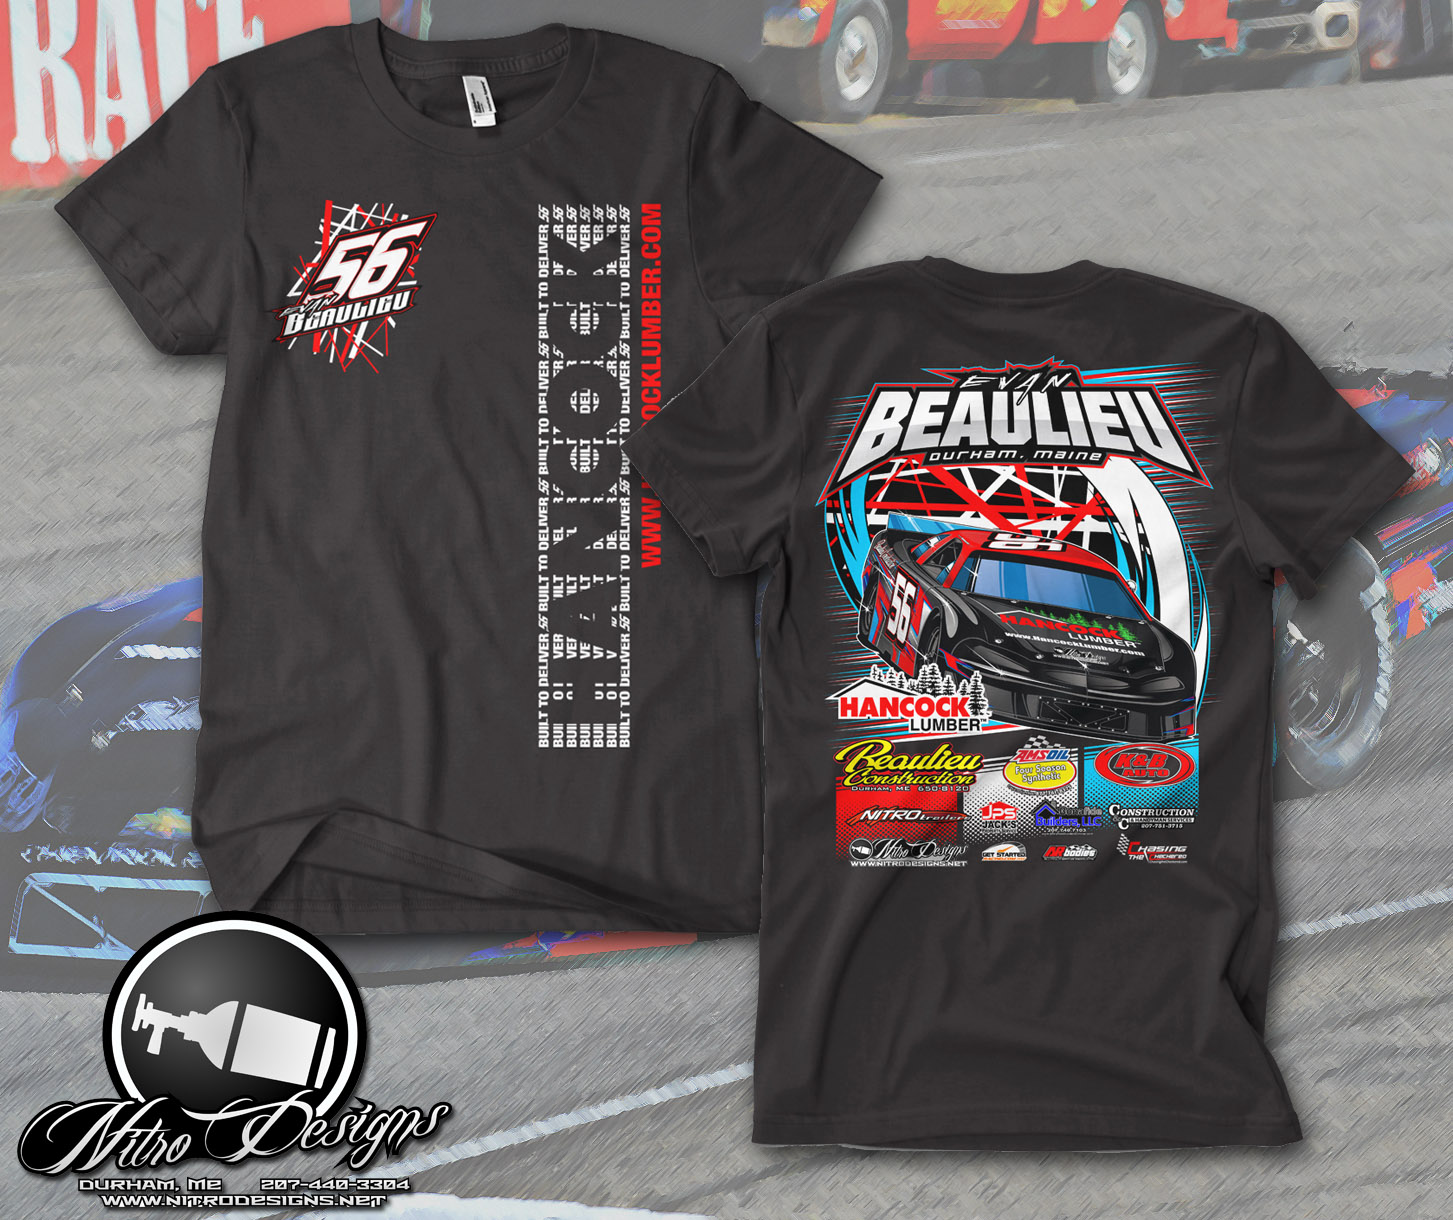 2017 Beaulieu Racing Shirts